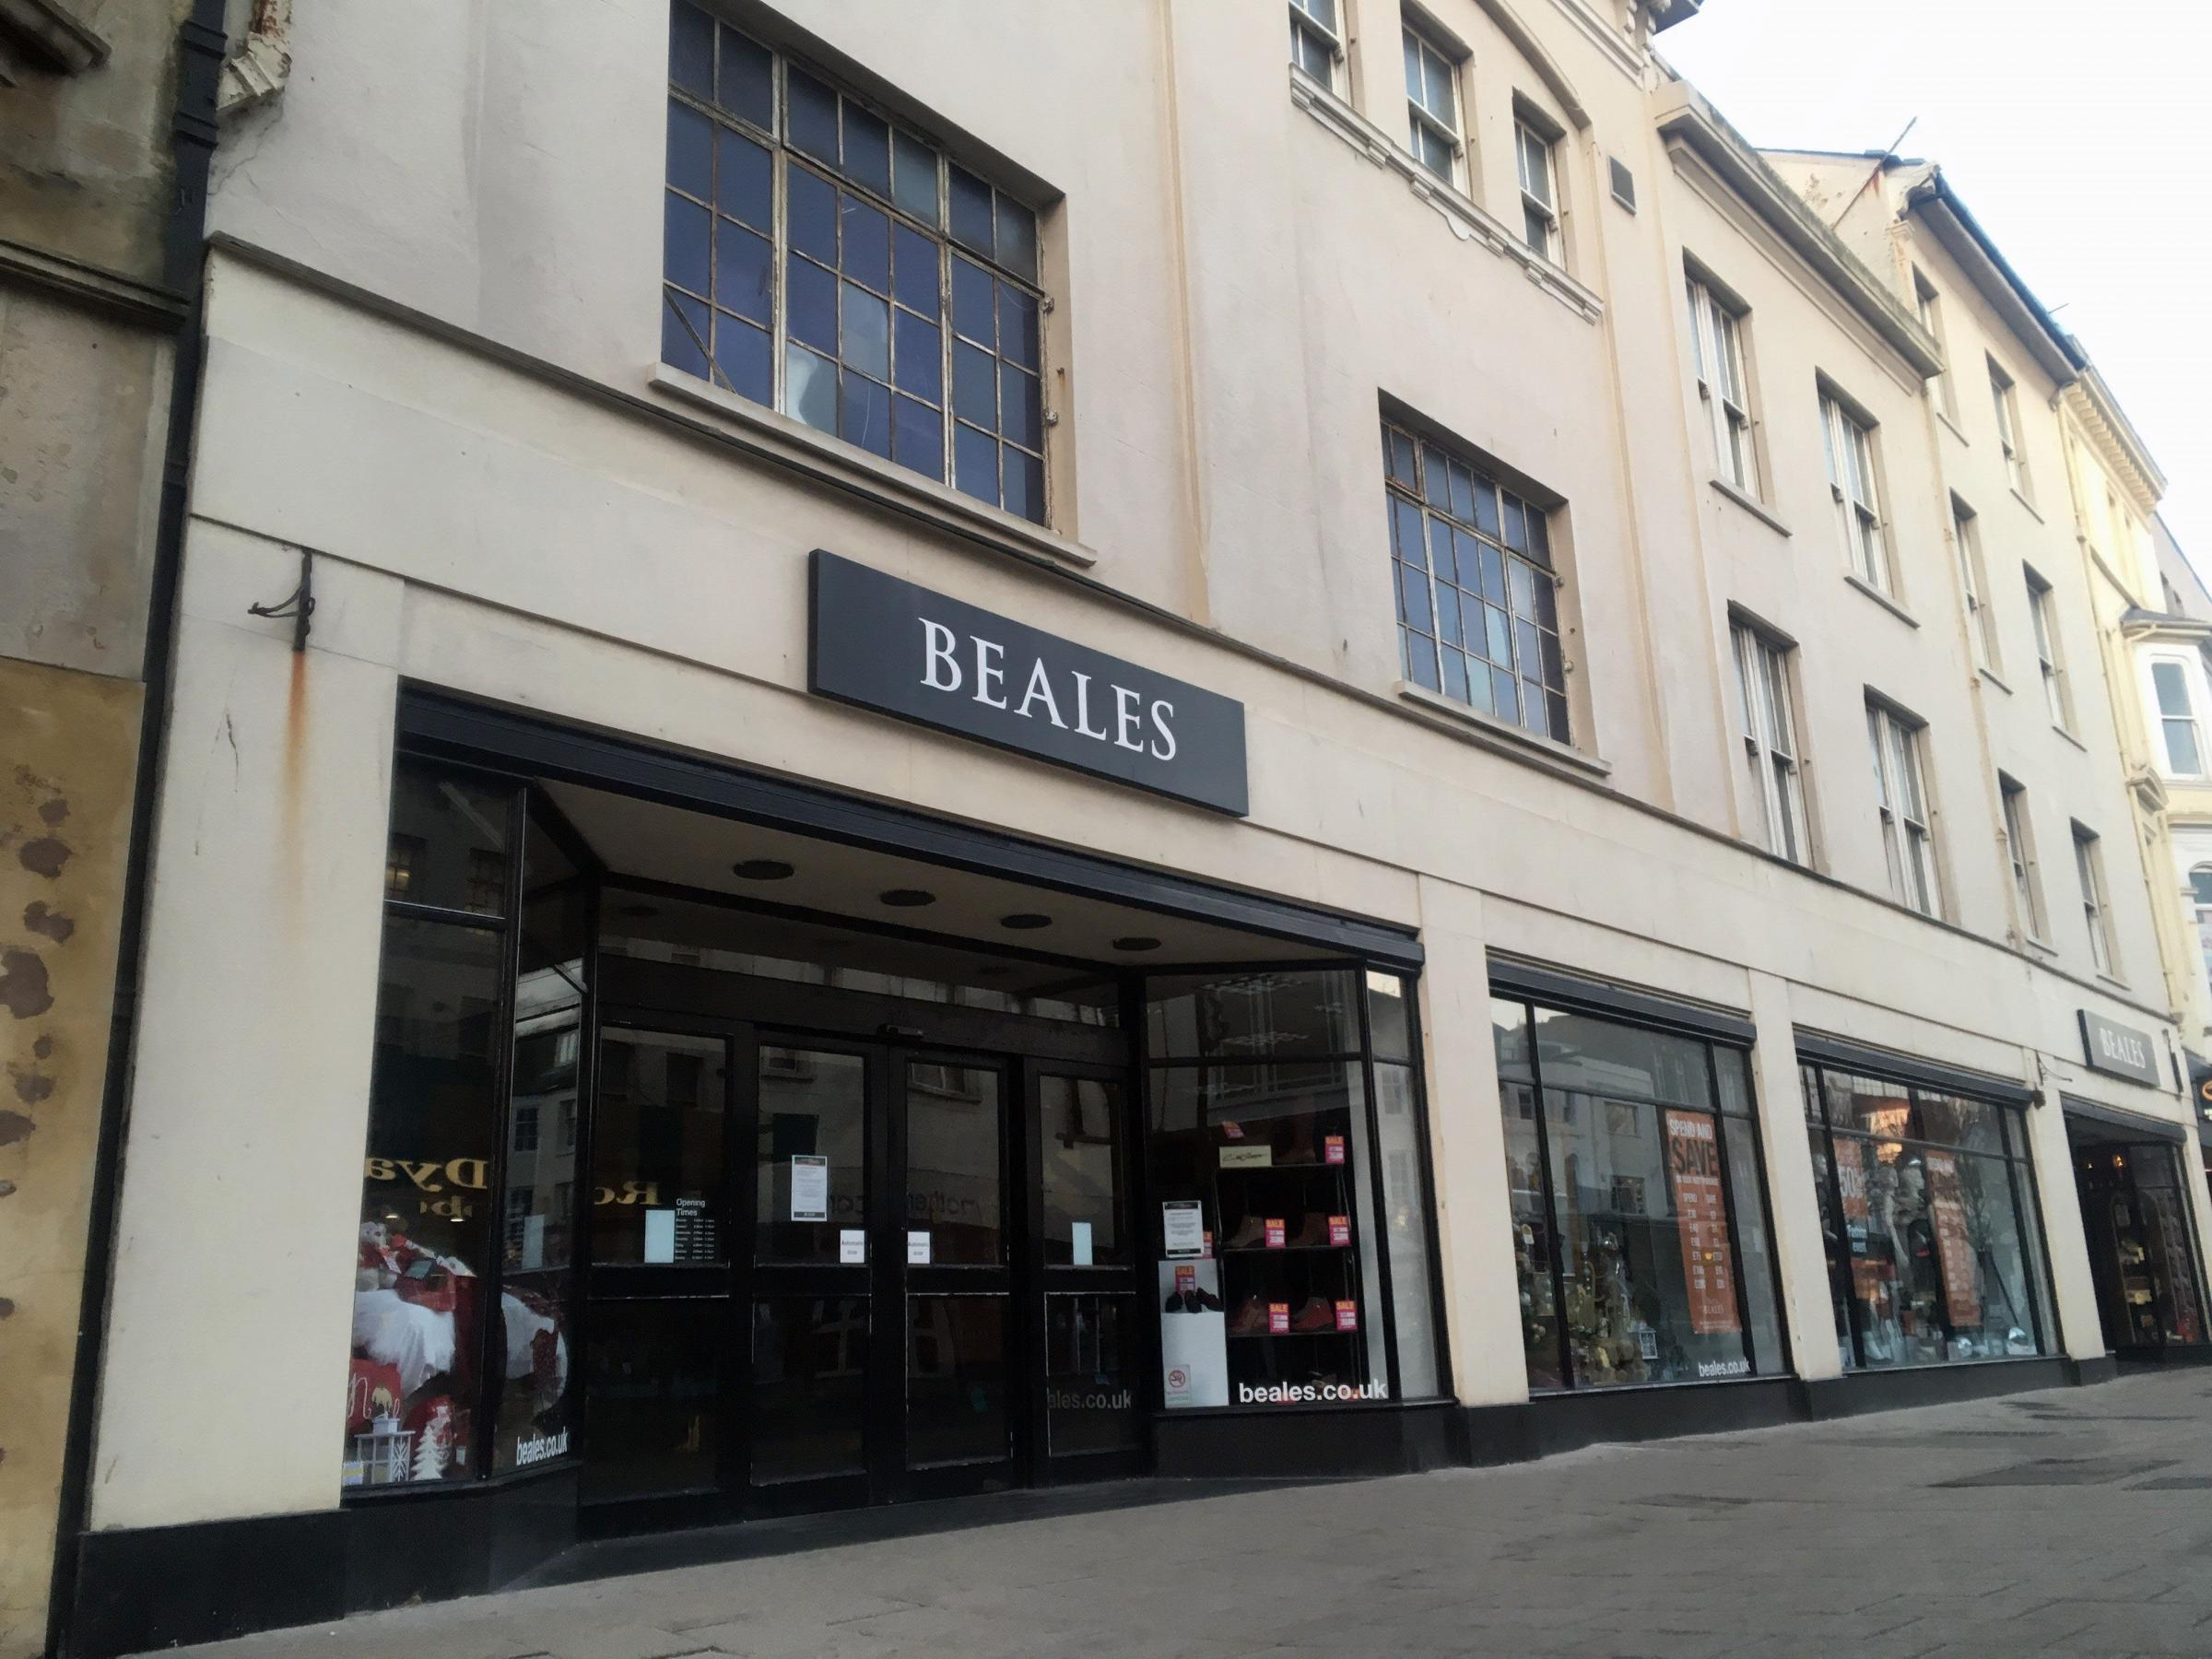 Beales department store, in Worthing.